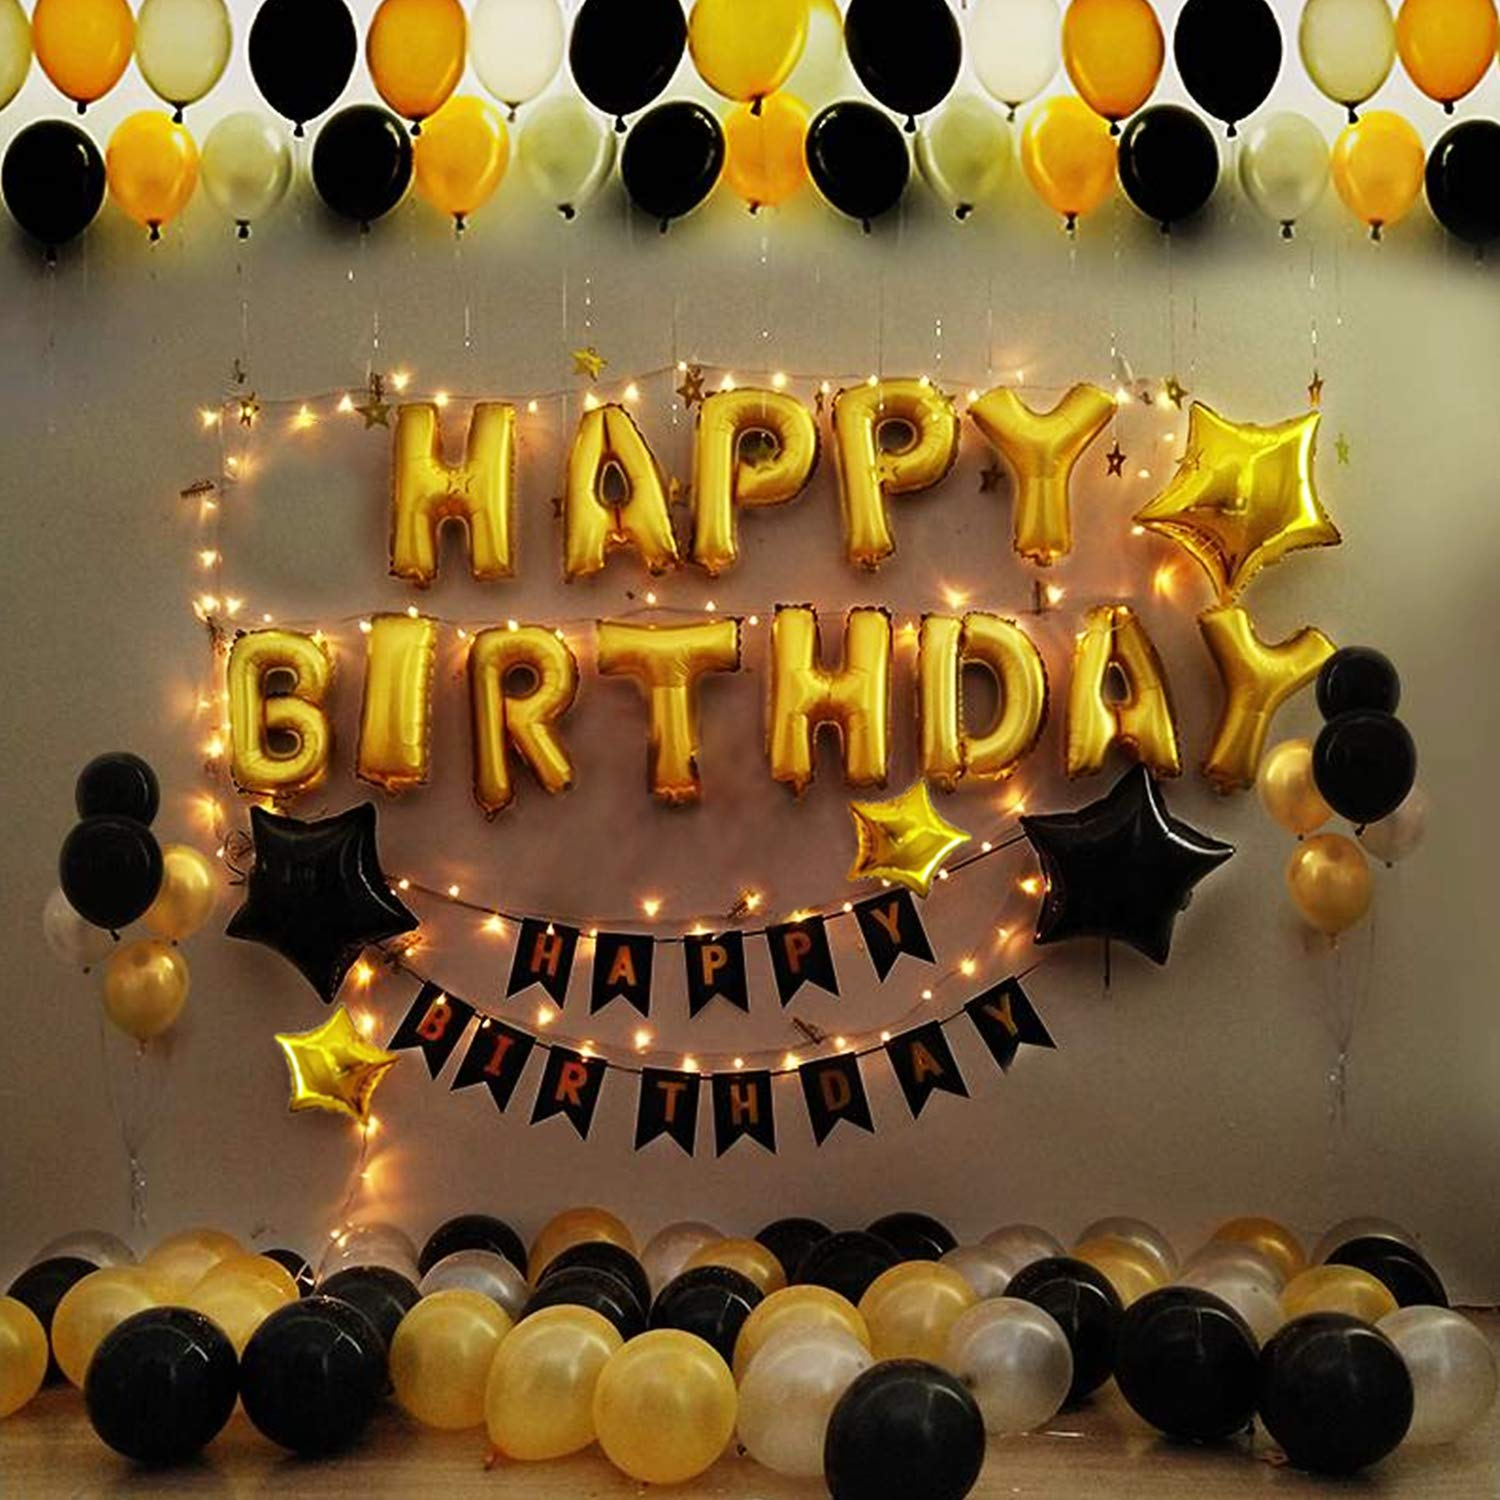 Party Propz Happy Birthday Balloons Decoration Kit Items Combo 42pcs For Kids Boys Girls Adult Women Husband Quarantine Theme Decorations Black Gold Supplies Foil Balloon Latex Baloon Star And Banner Amazon In Toys Games